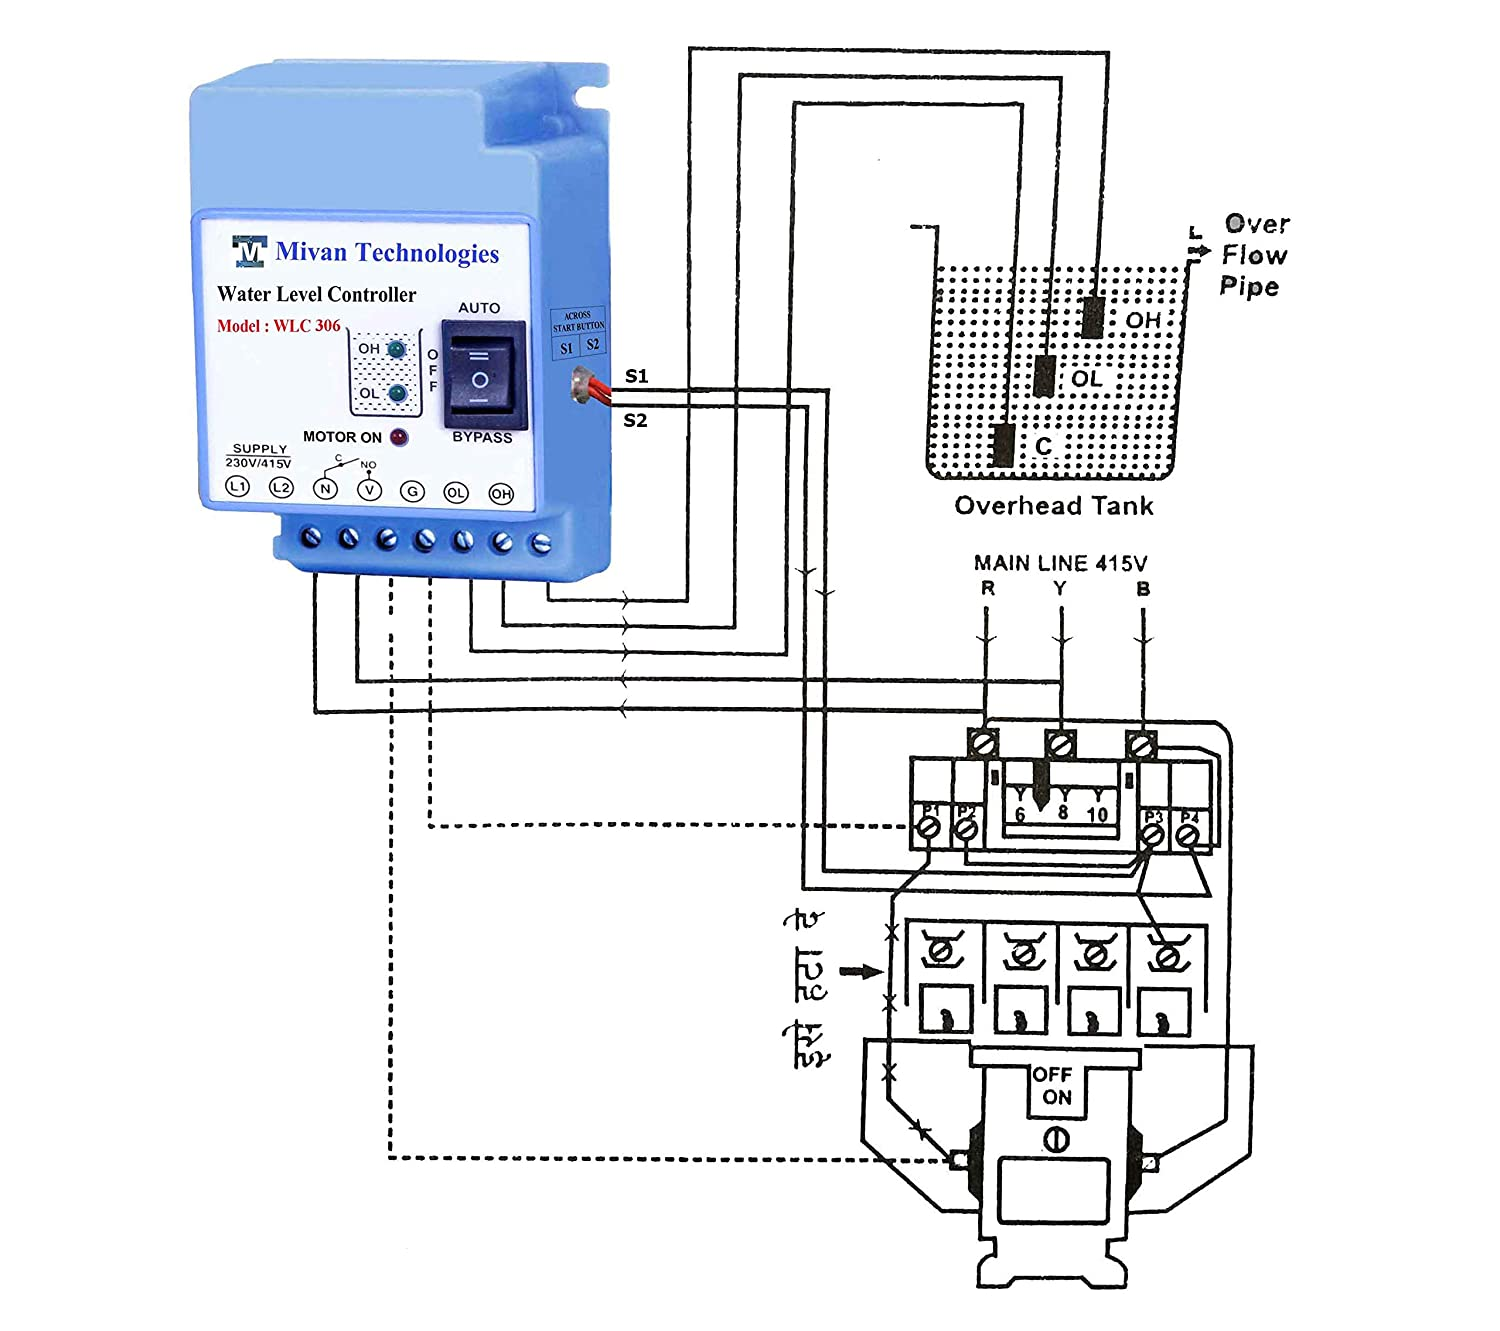 Buy Mivan Technologies 3 Phase Fully Automatic Water Level Starter Wiring Diagram On Underground Electrical For A House Controller Blue Online At Low Prices In India